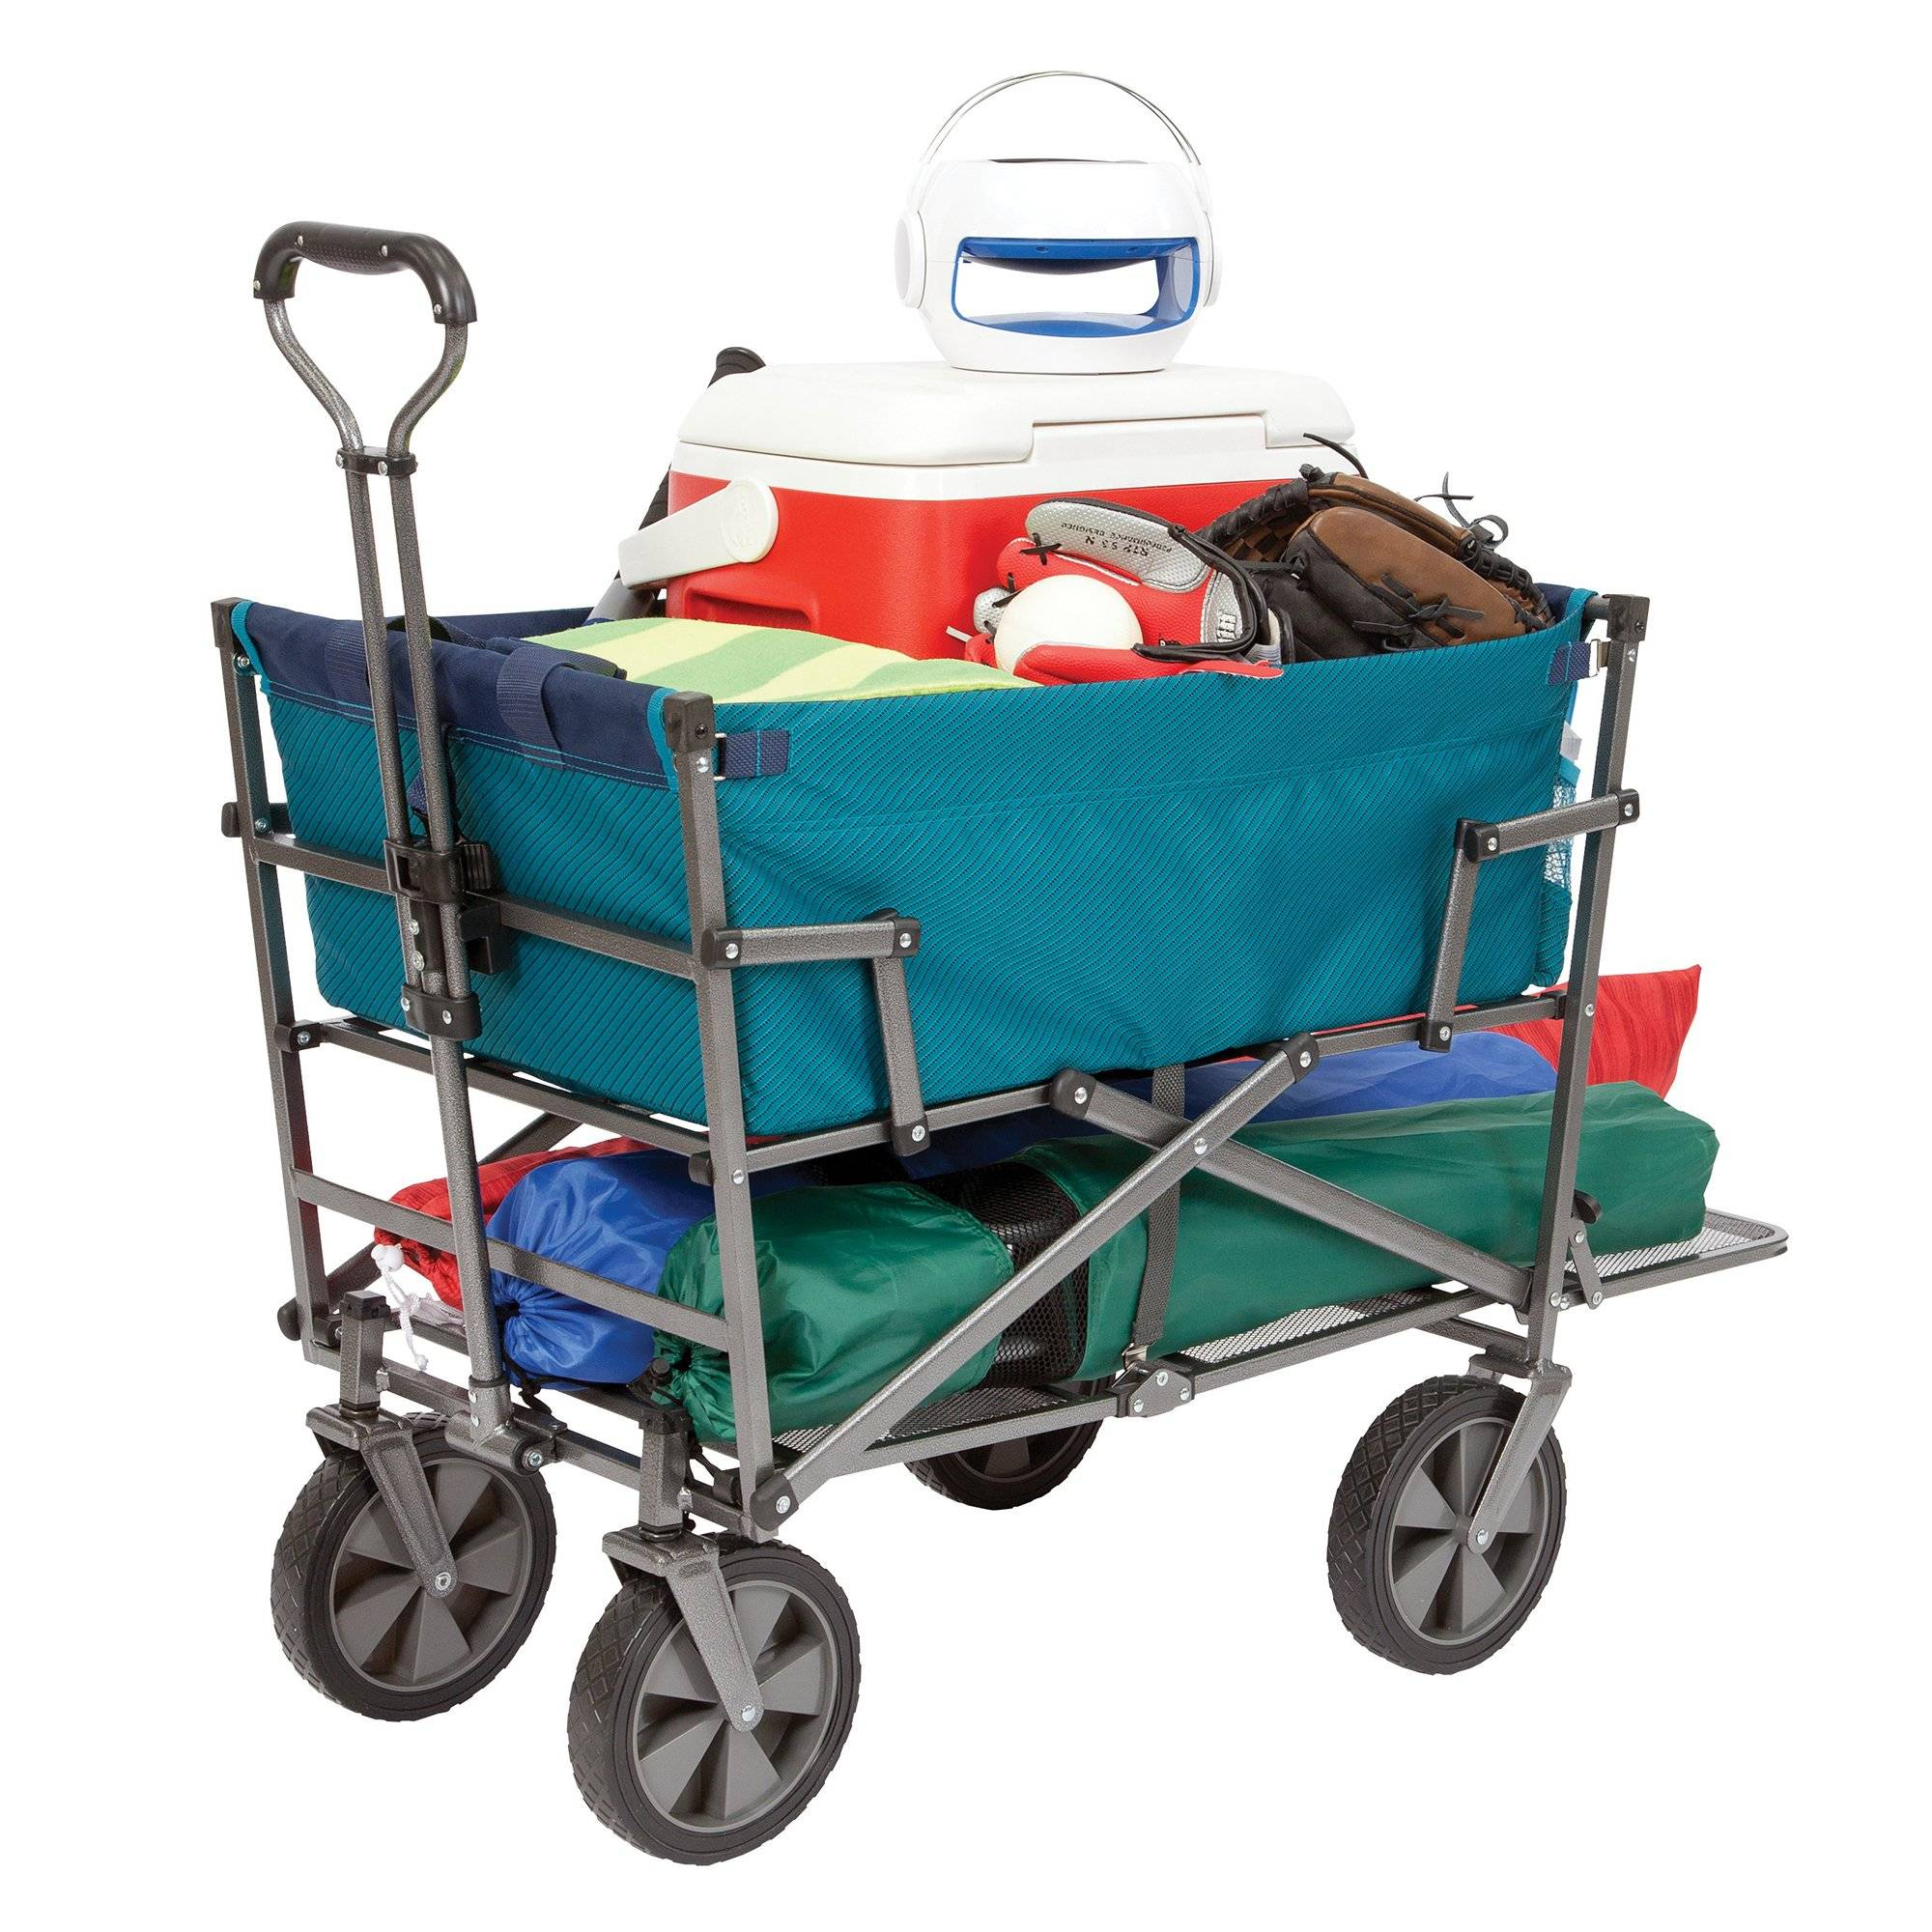 Mac Sports Collapsible Double Decker Outdoor Utility Wagon, Teal